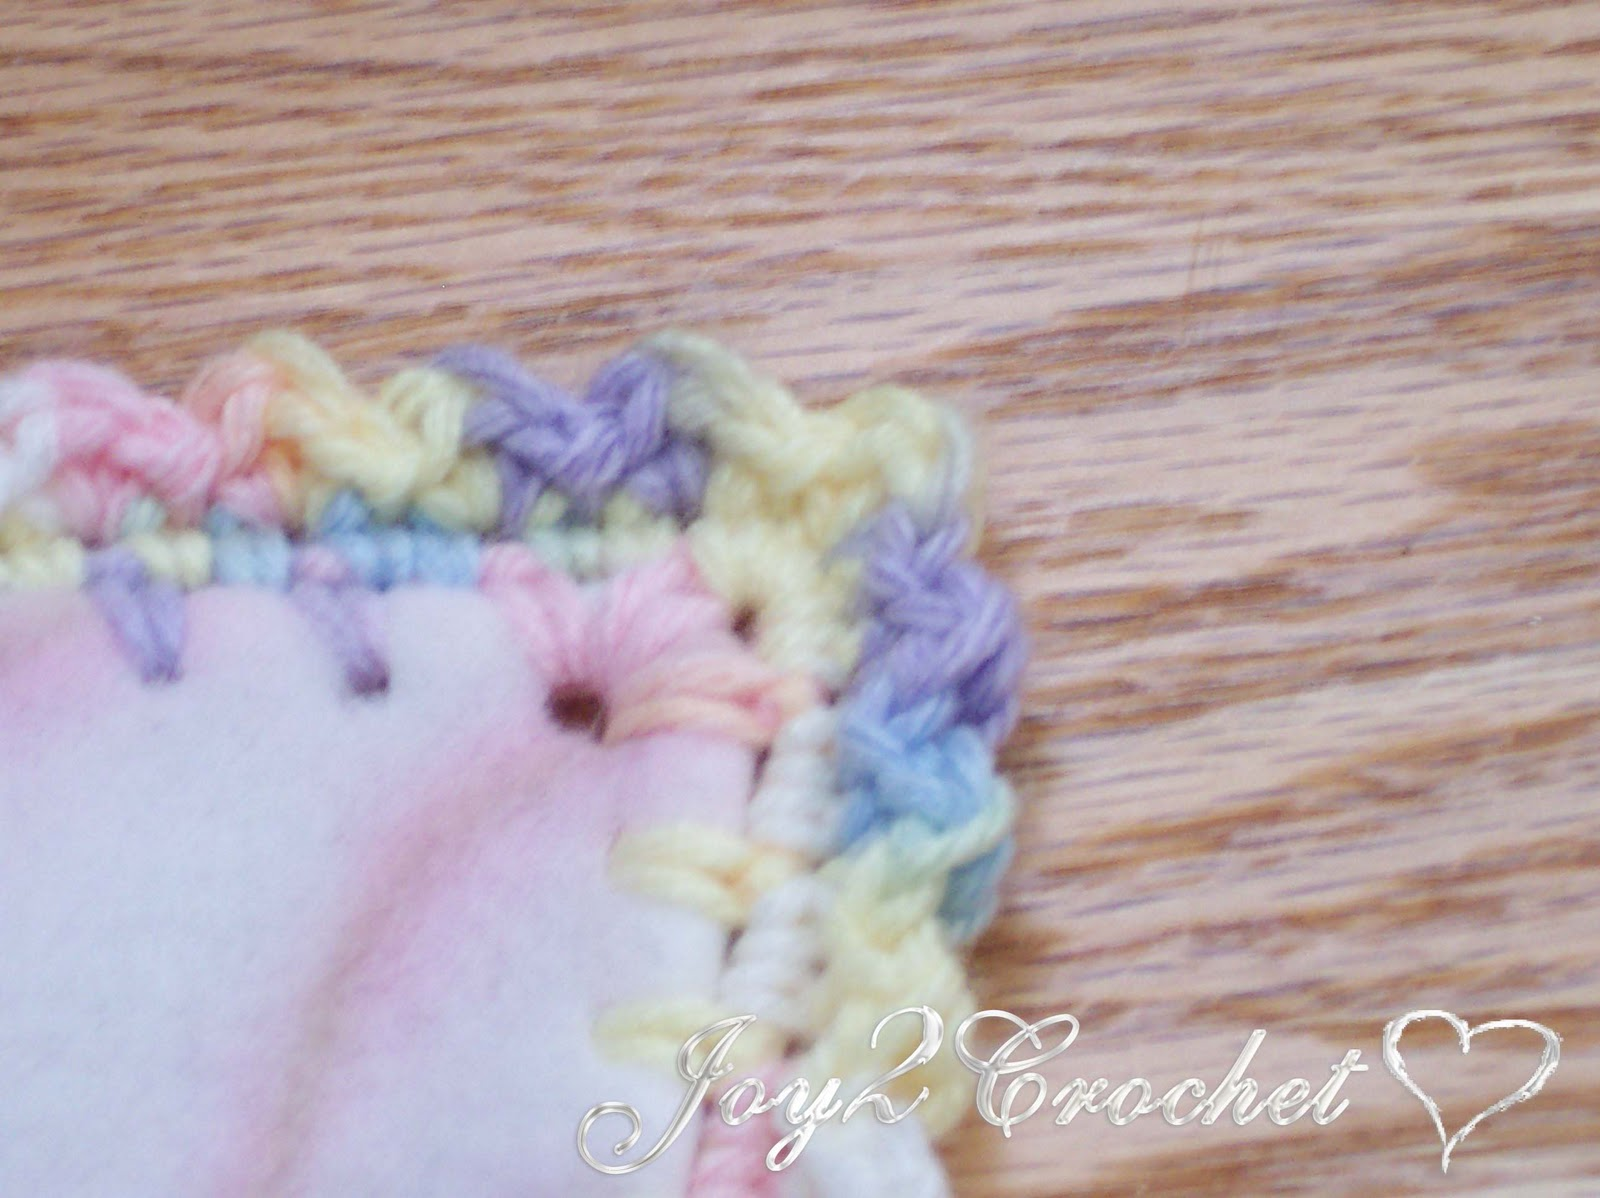 Crocheting Edges On Baby Blankets : Joy 2 Crochet: Fleece Baby Blankets with Crocheted Edge